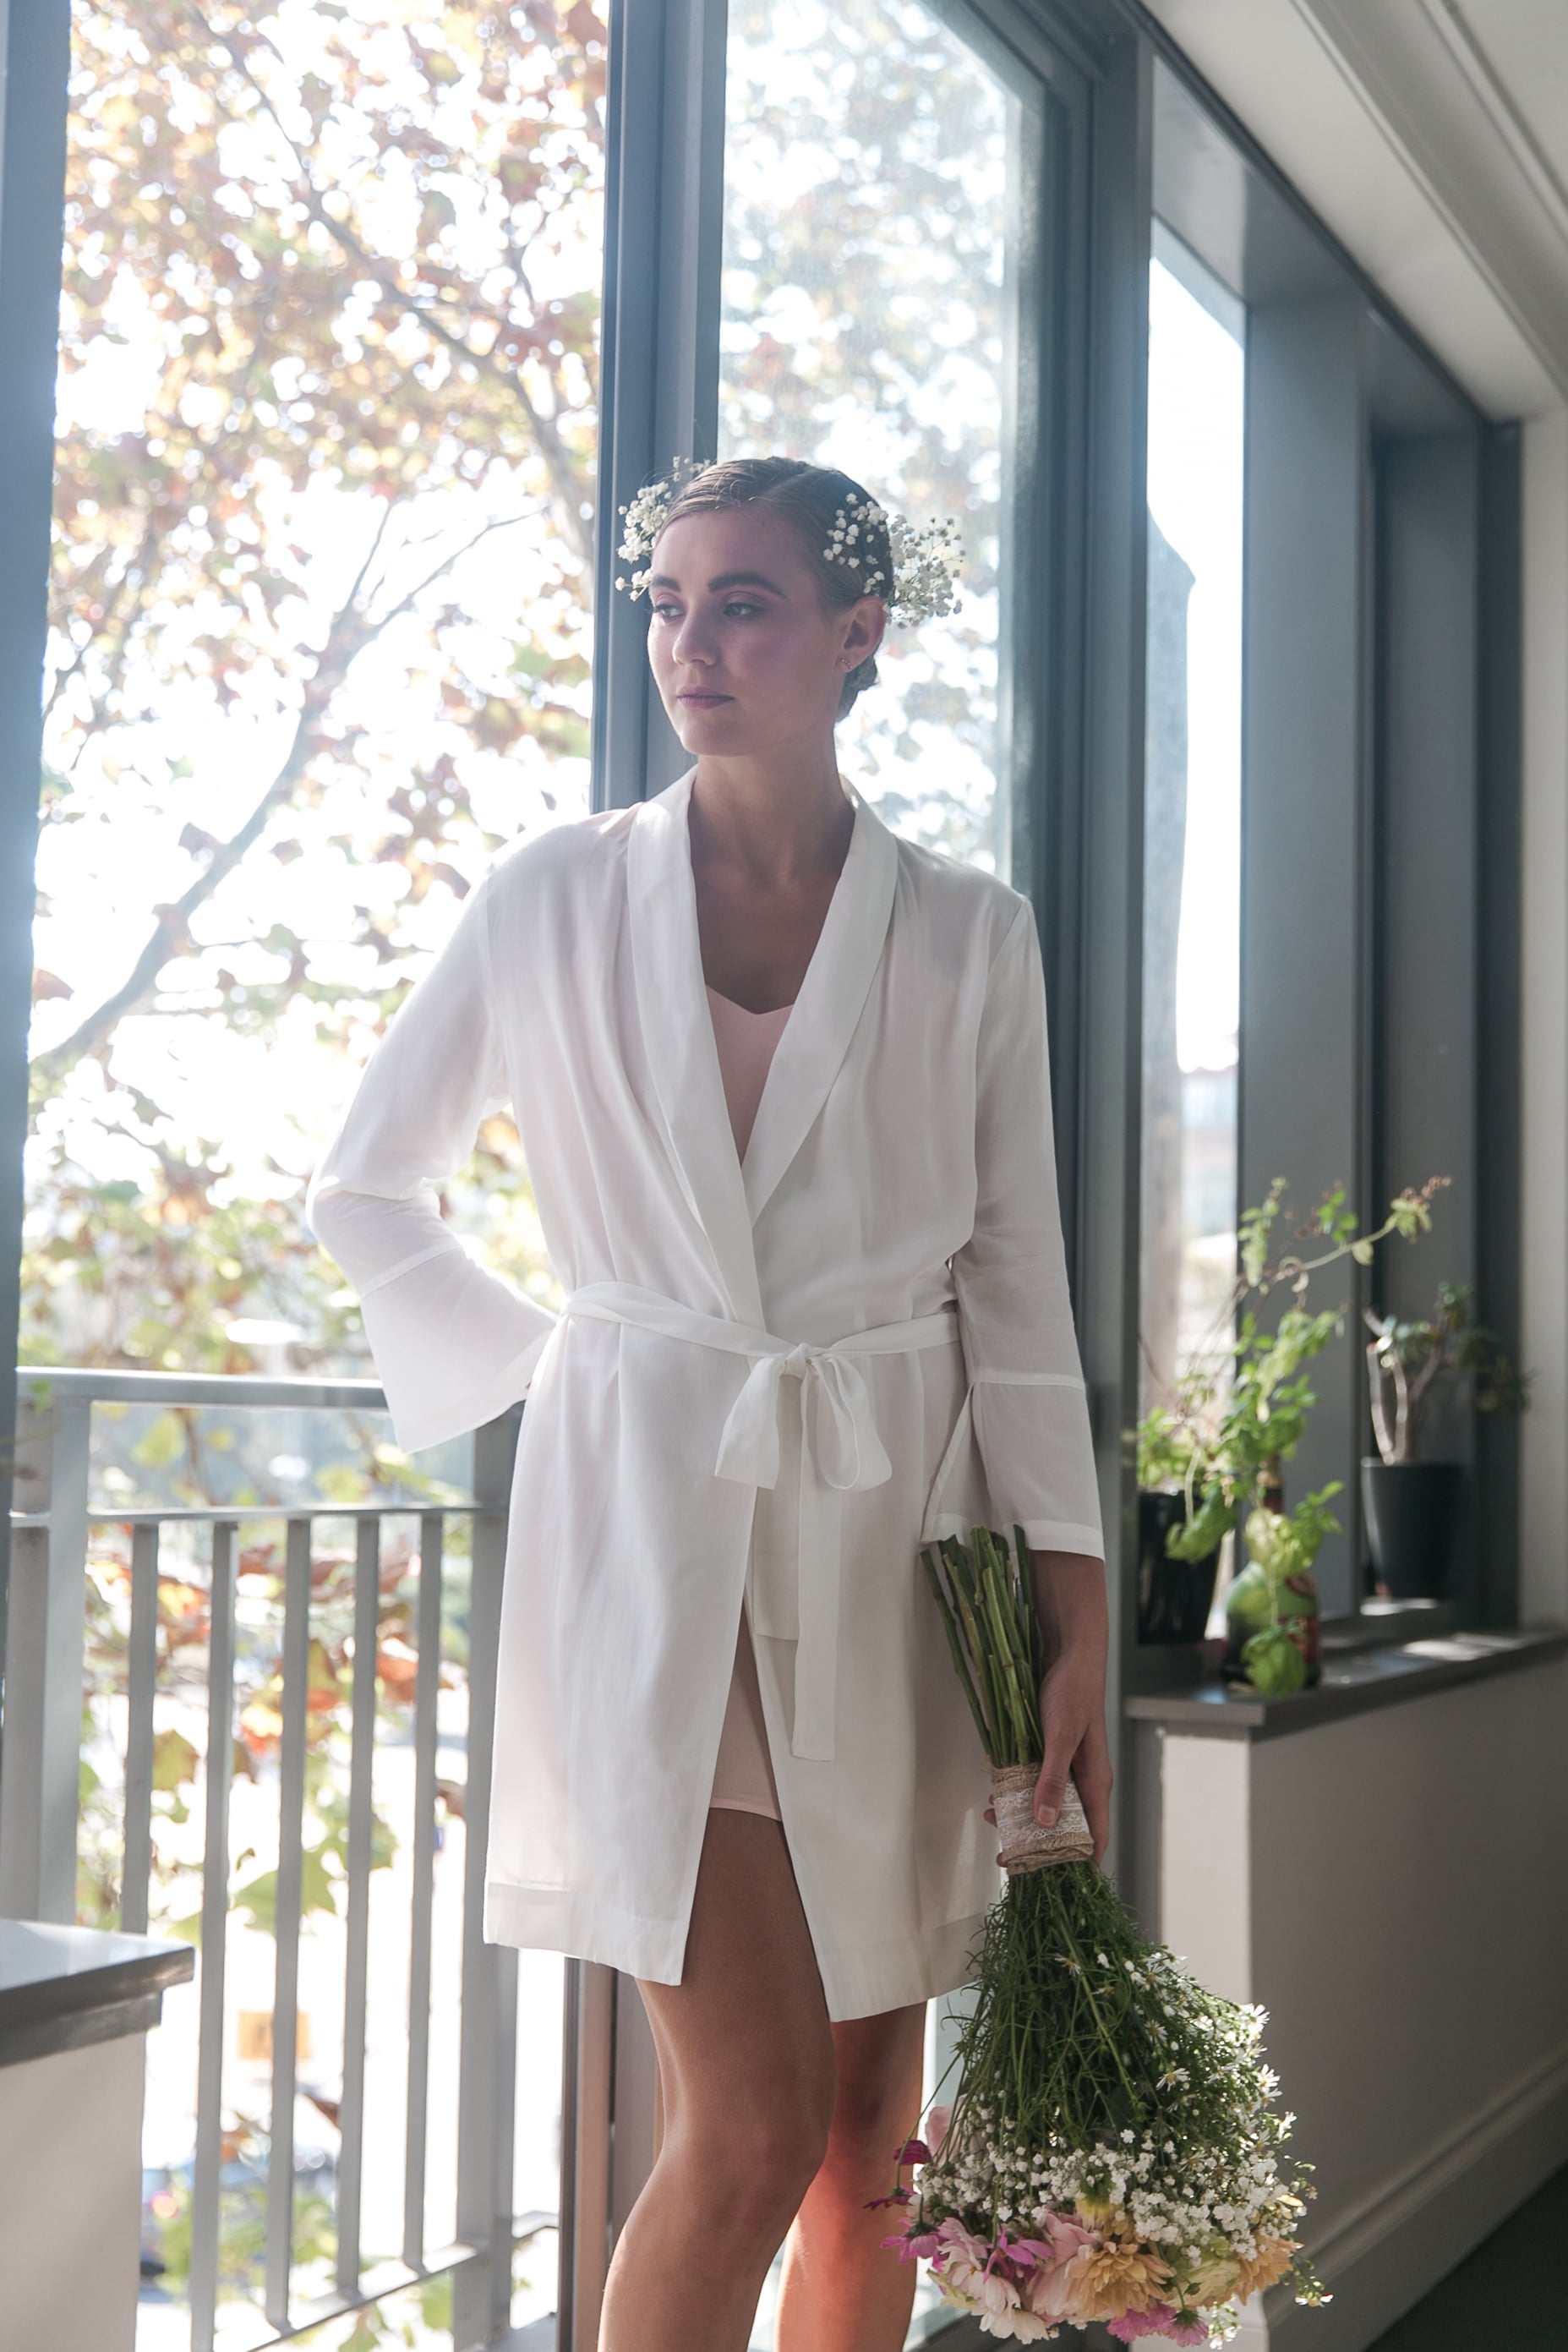 Model dressed in white bridal robe